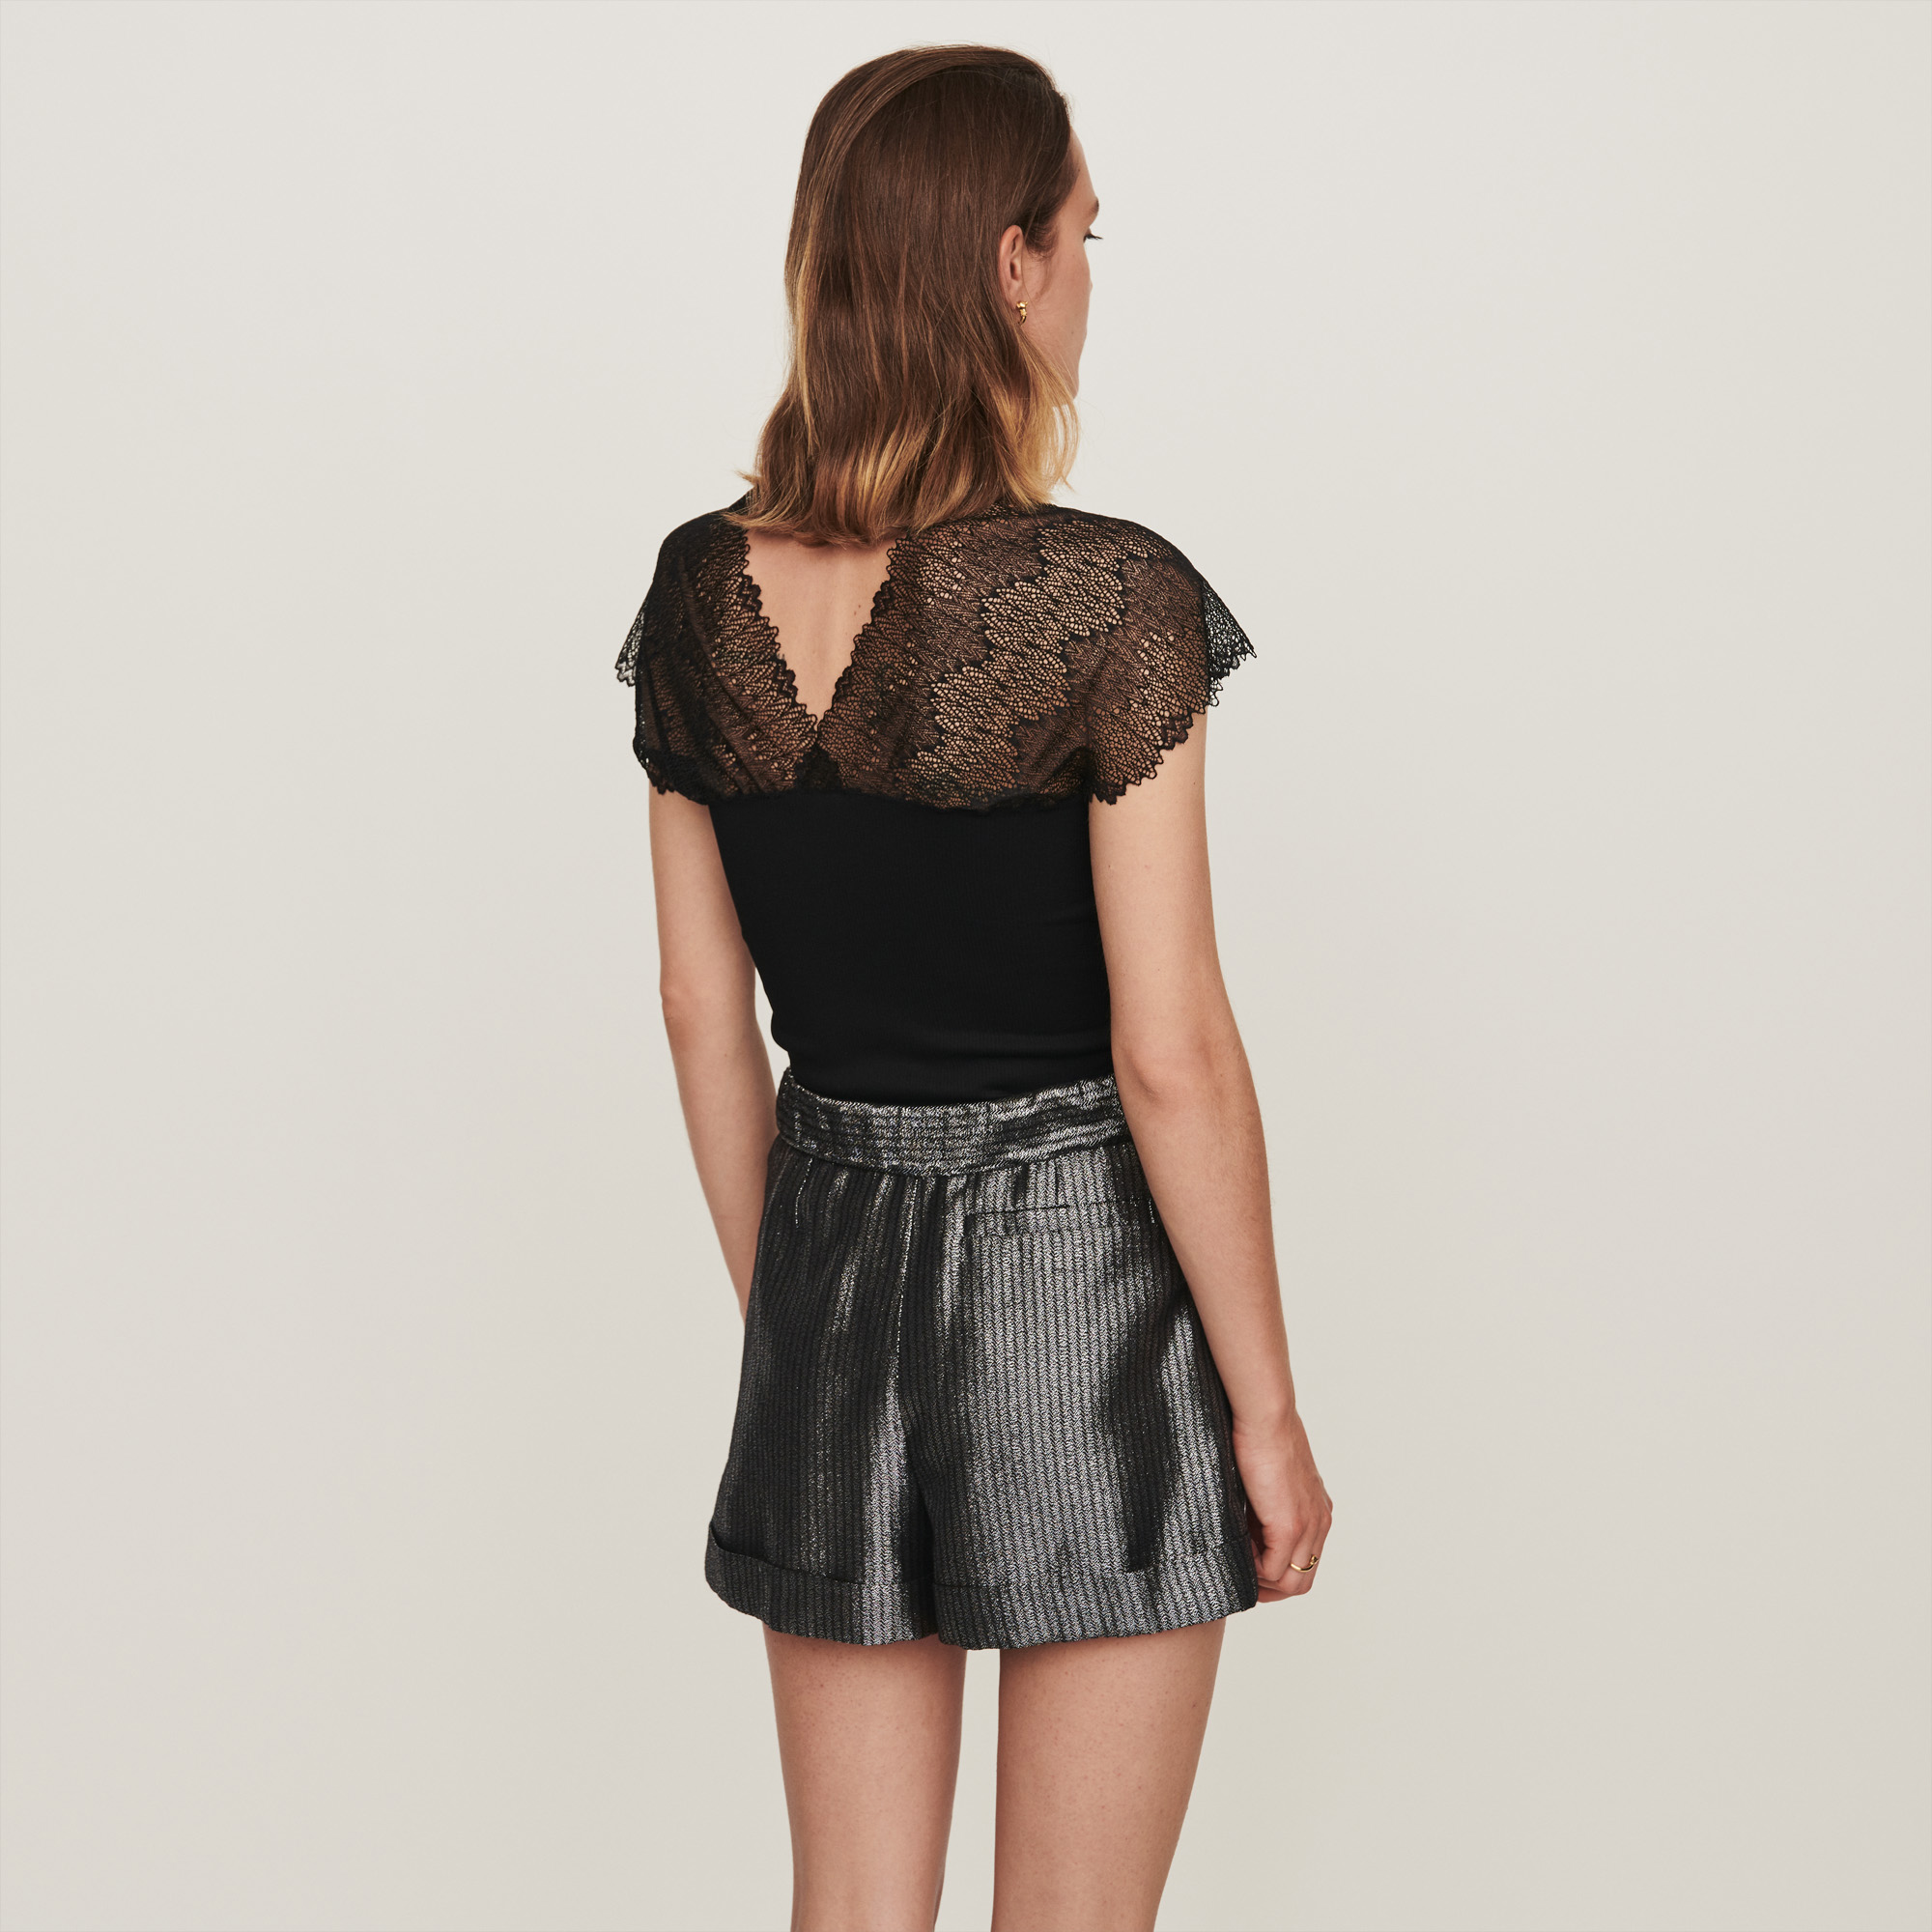 Jersey Top With Lace Trim - Black